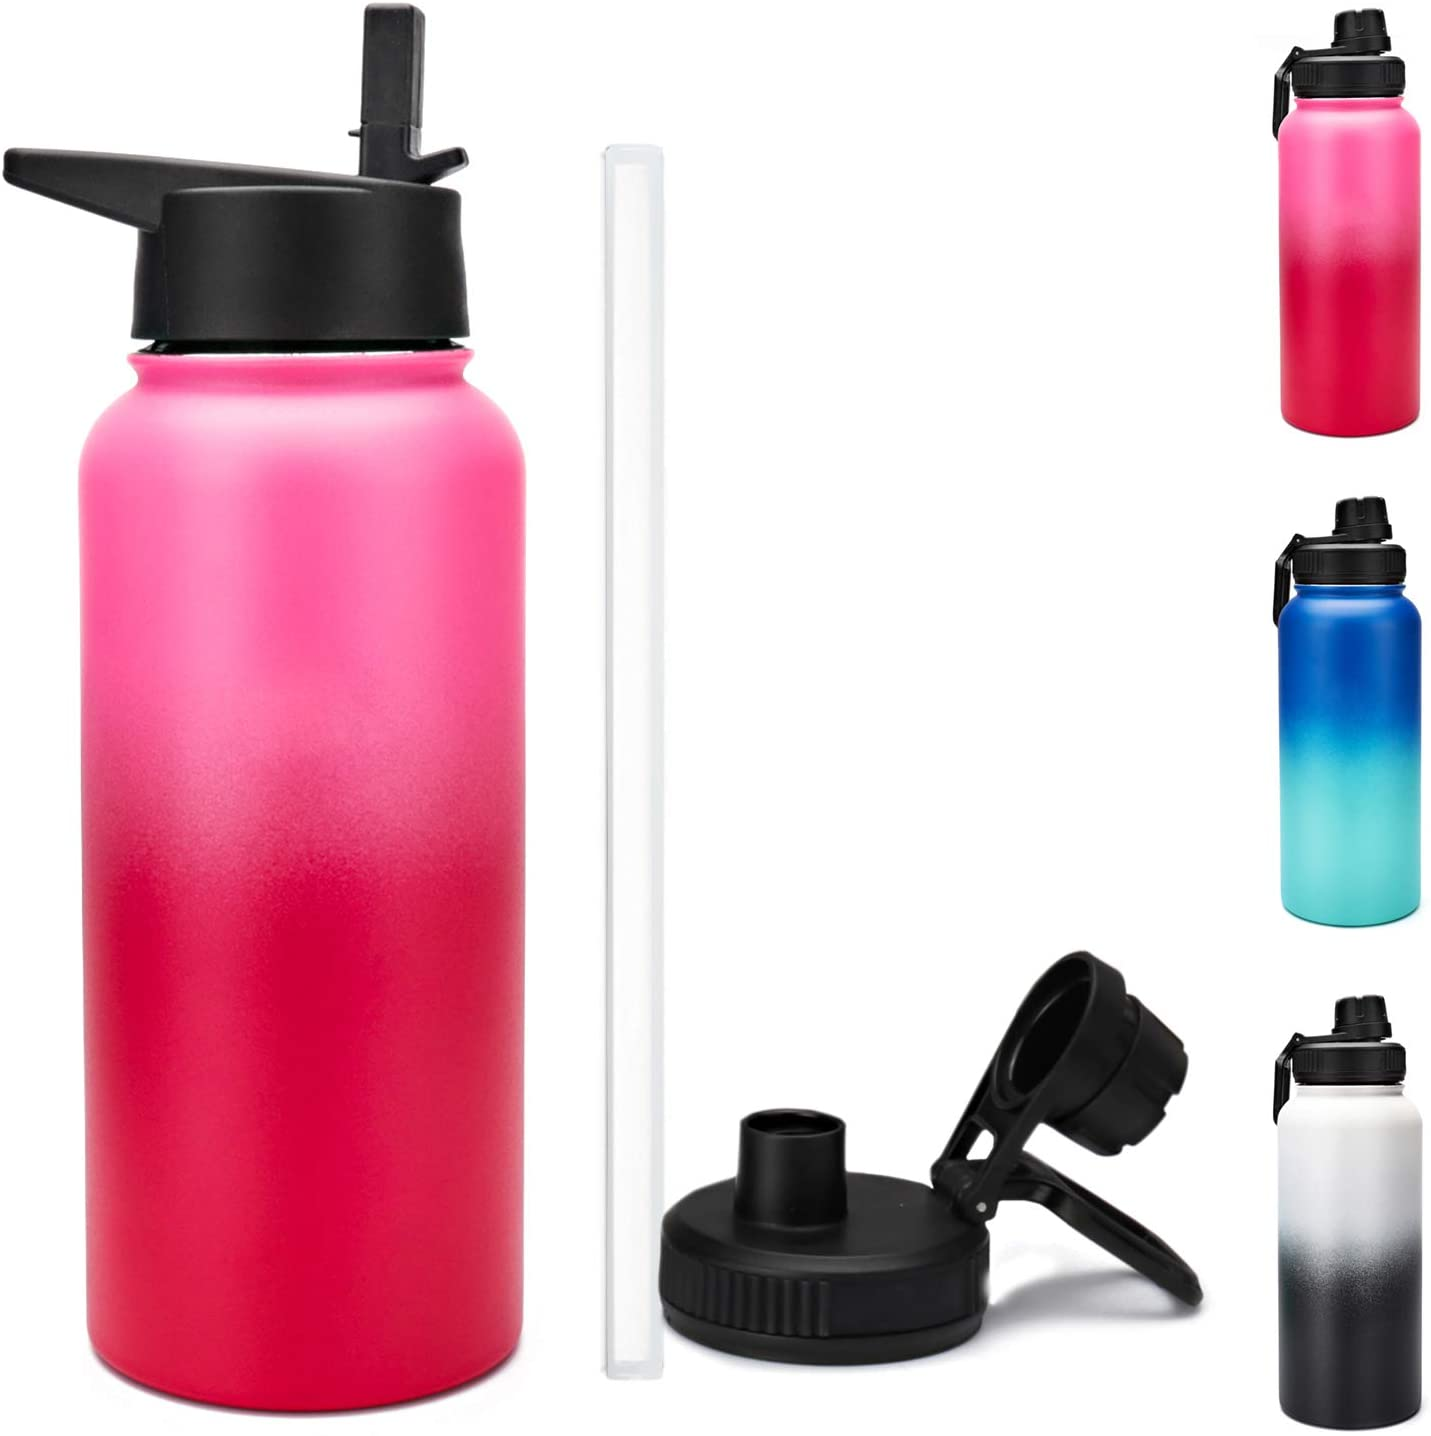 NeBaee Insulated Water Bottle - 24oz, 32oz, 40oz, 2 Lids (Straw Lid), Keep Liquids Hot or Cold with Double Wall Vacuum Insulated Stainless Steel, Design for Sports (red+pink, 32oz)